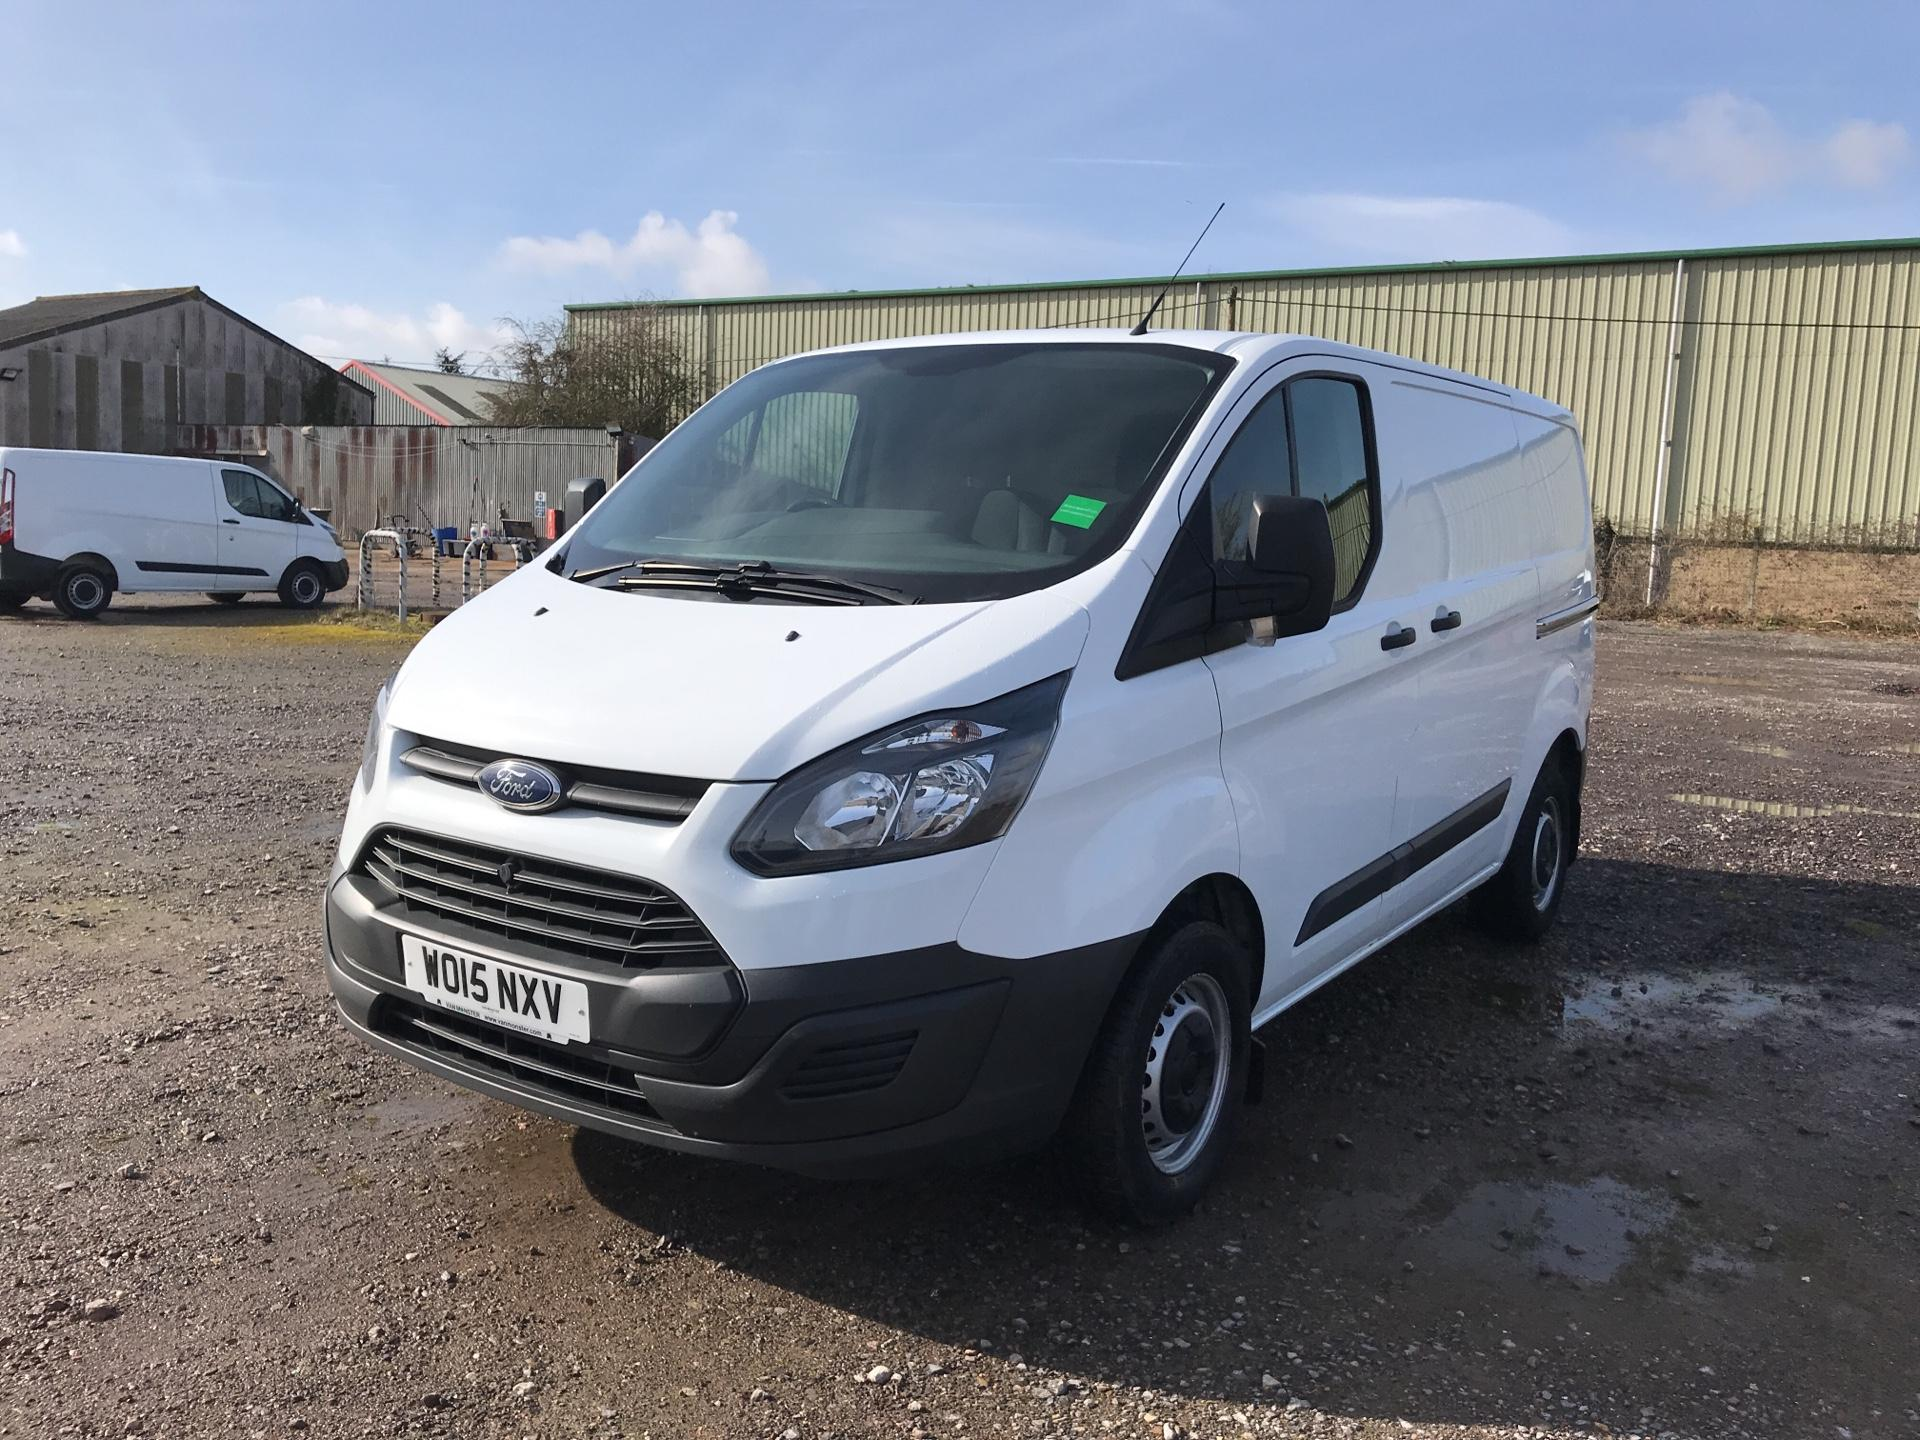 2015 Ford Transit Custom 290 L1 DIESEL FWD 2.2 TDCI 100PS LOW ROOF VAN EURO 5 (WO15NXV) Thumbnail 7